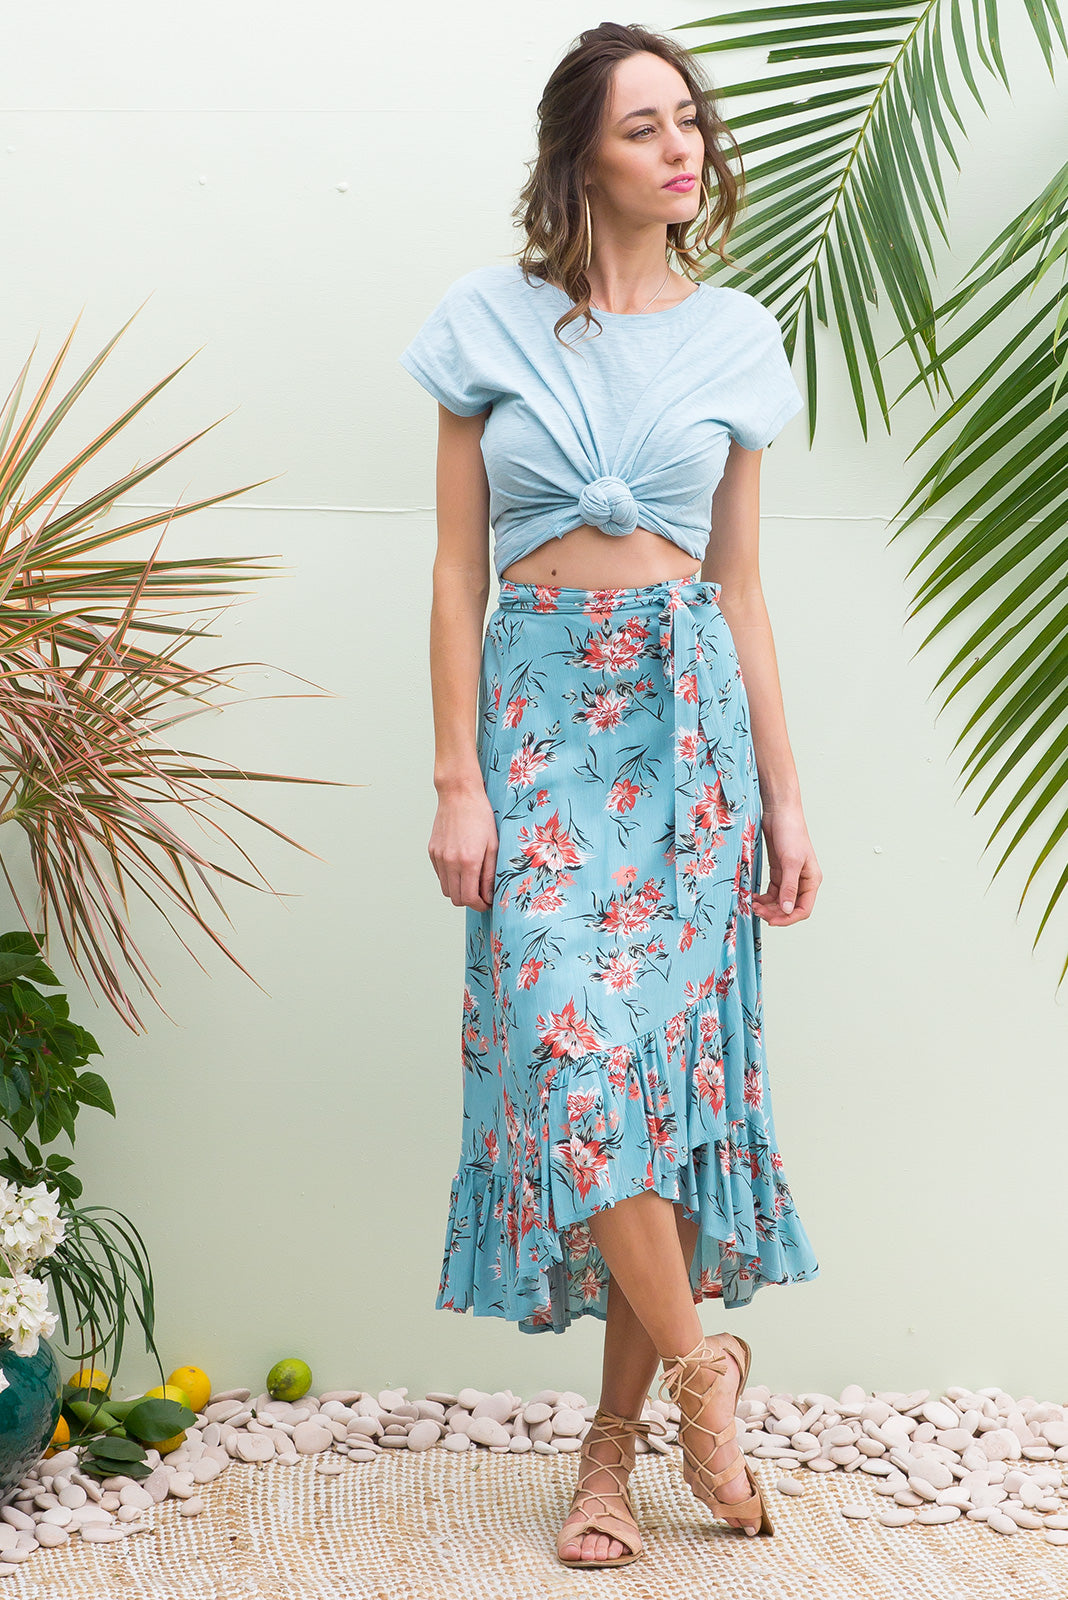 Highlight Osterley Blue Wrap Skirt with a deep frill in a duck egg blue and terracotta floral print on a crinkle texture woven rayon